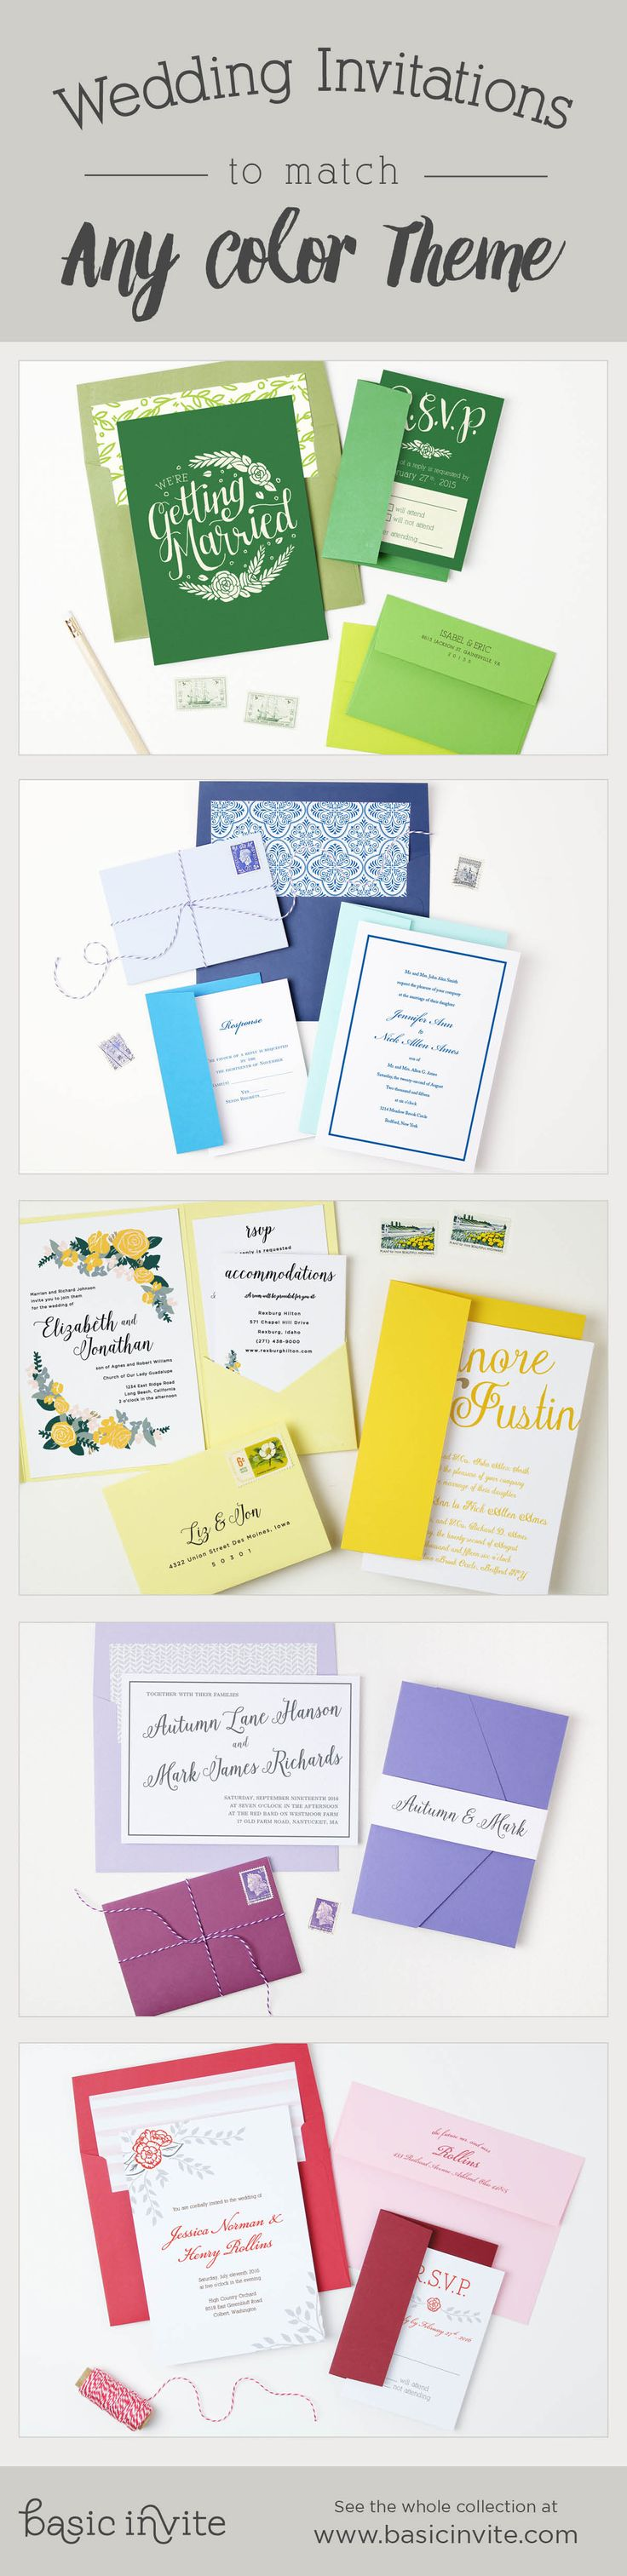 139 best Non Photo Wedding Invitations images on Pinterest | Photo ...